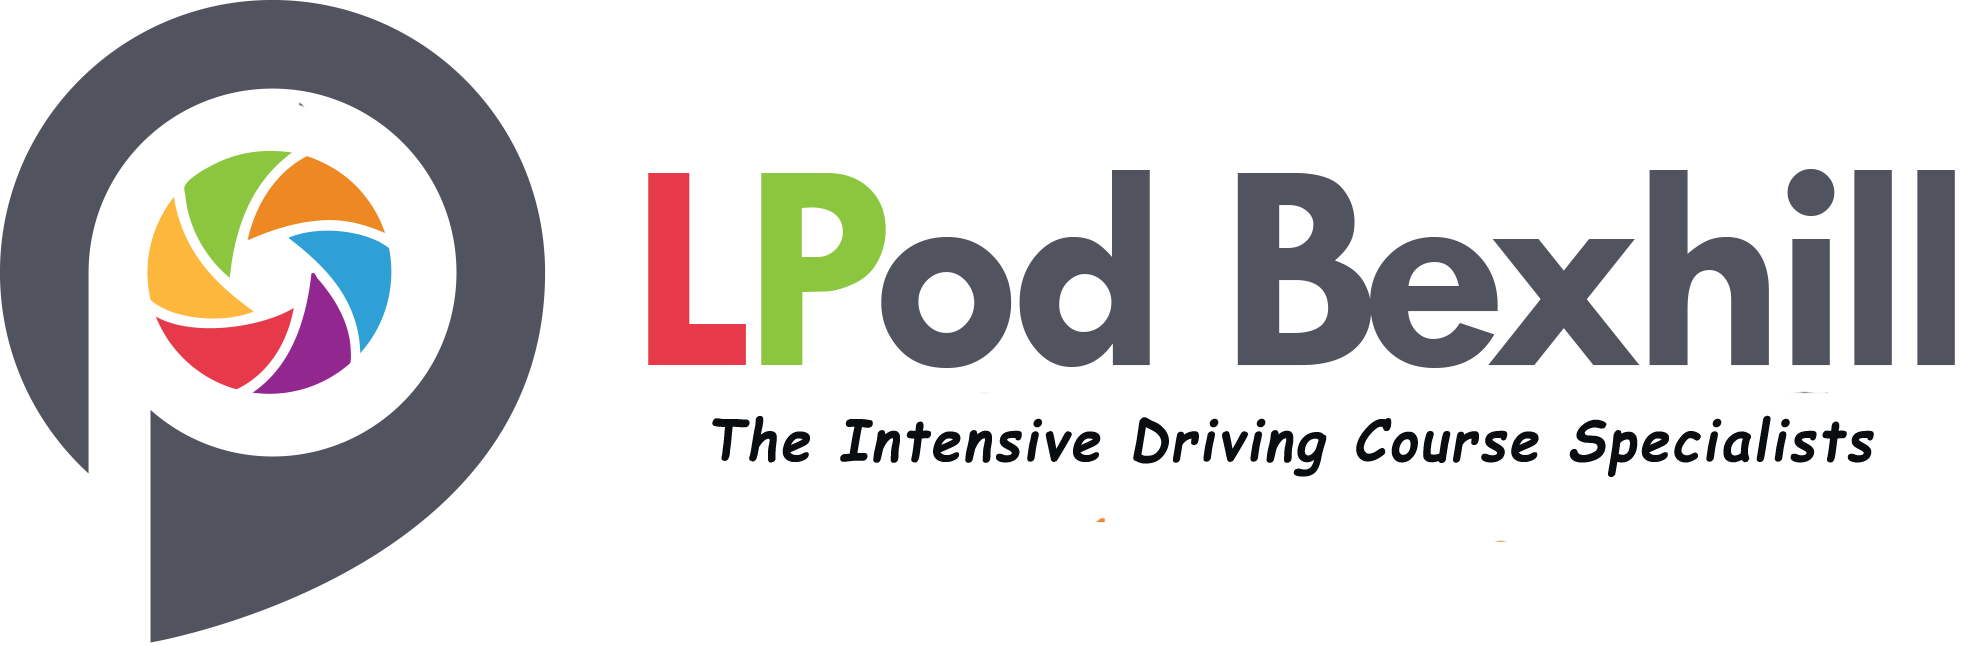 intensive driving courses bexhill, fast pass driving courses bexhill, one week driving courses bexhill